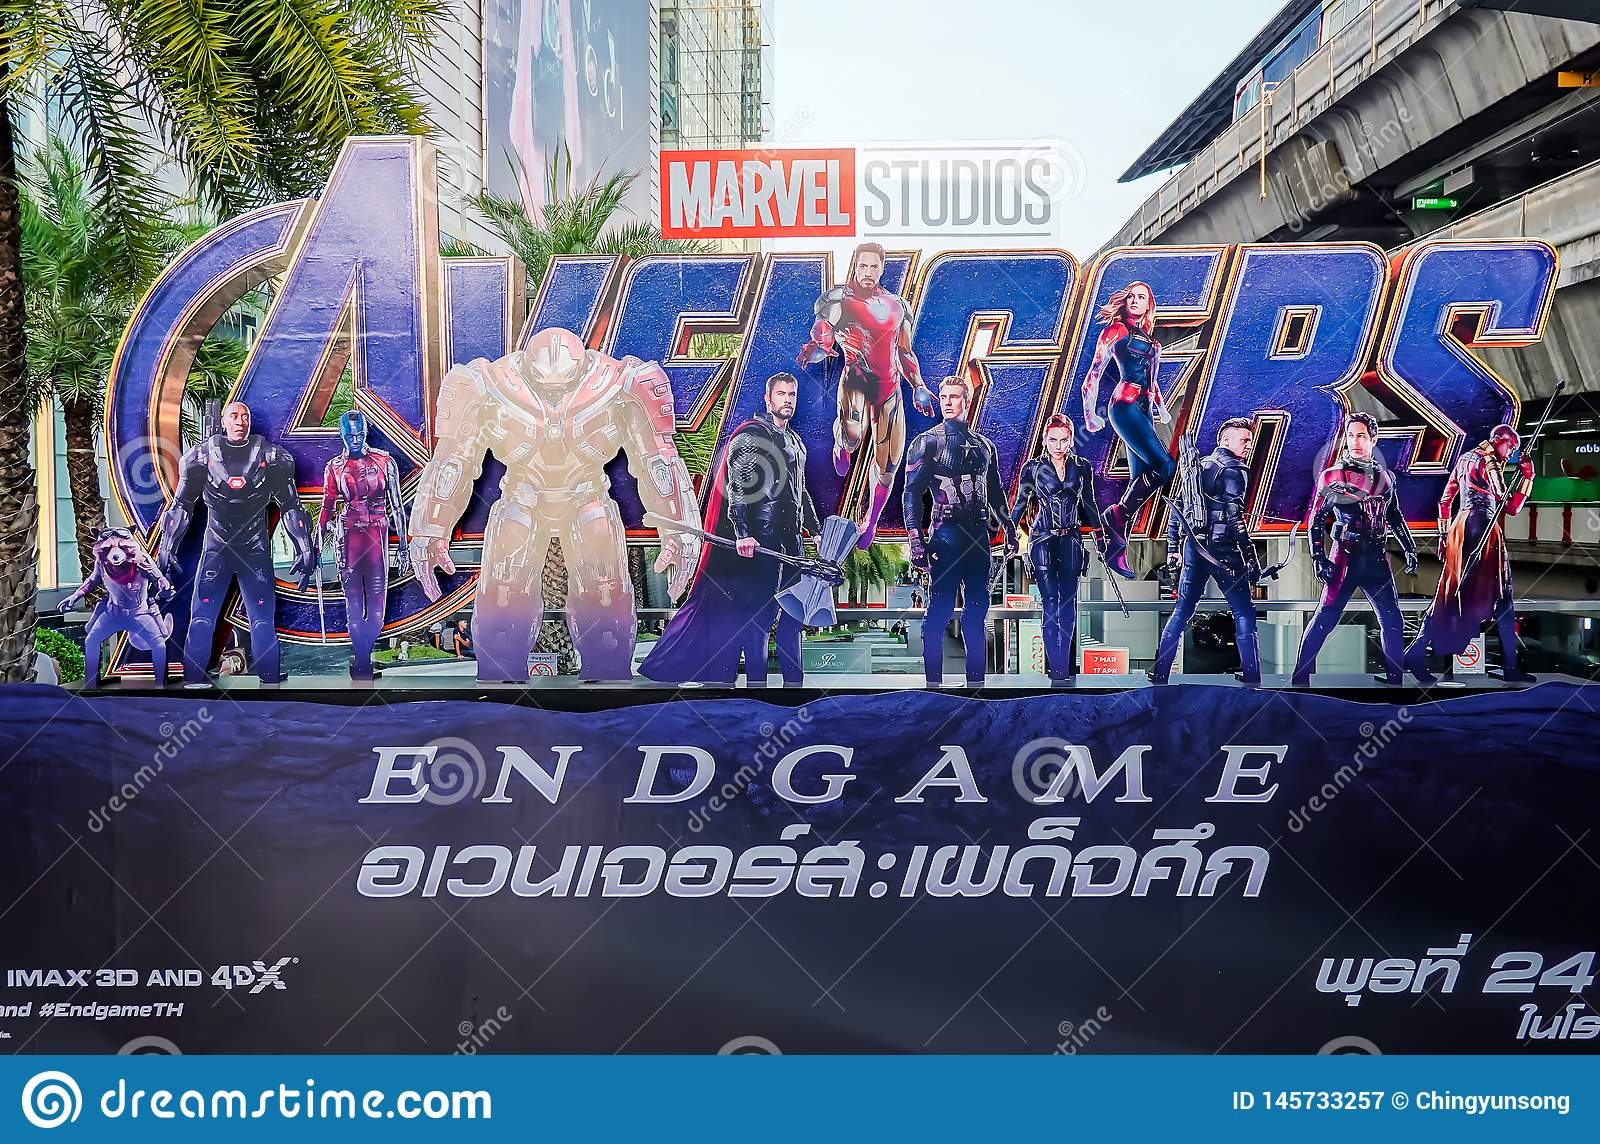 Avengers Endgame poster displayed; The Avengers, is a American superhero film based on the Marvel Comics